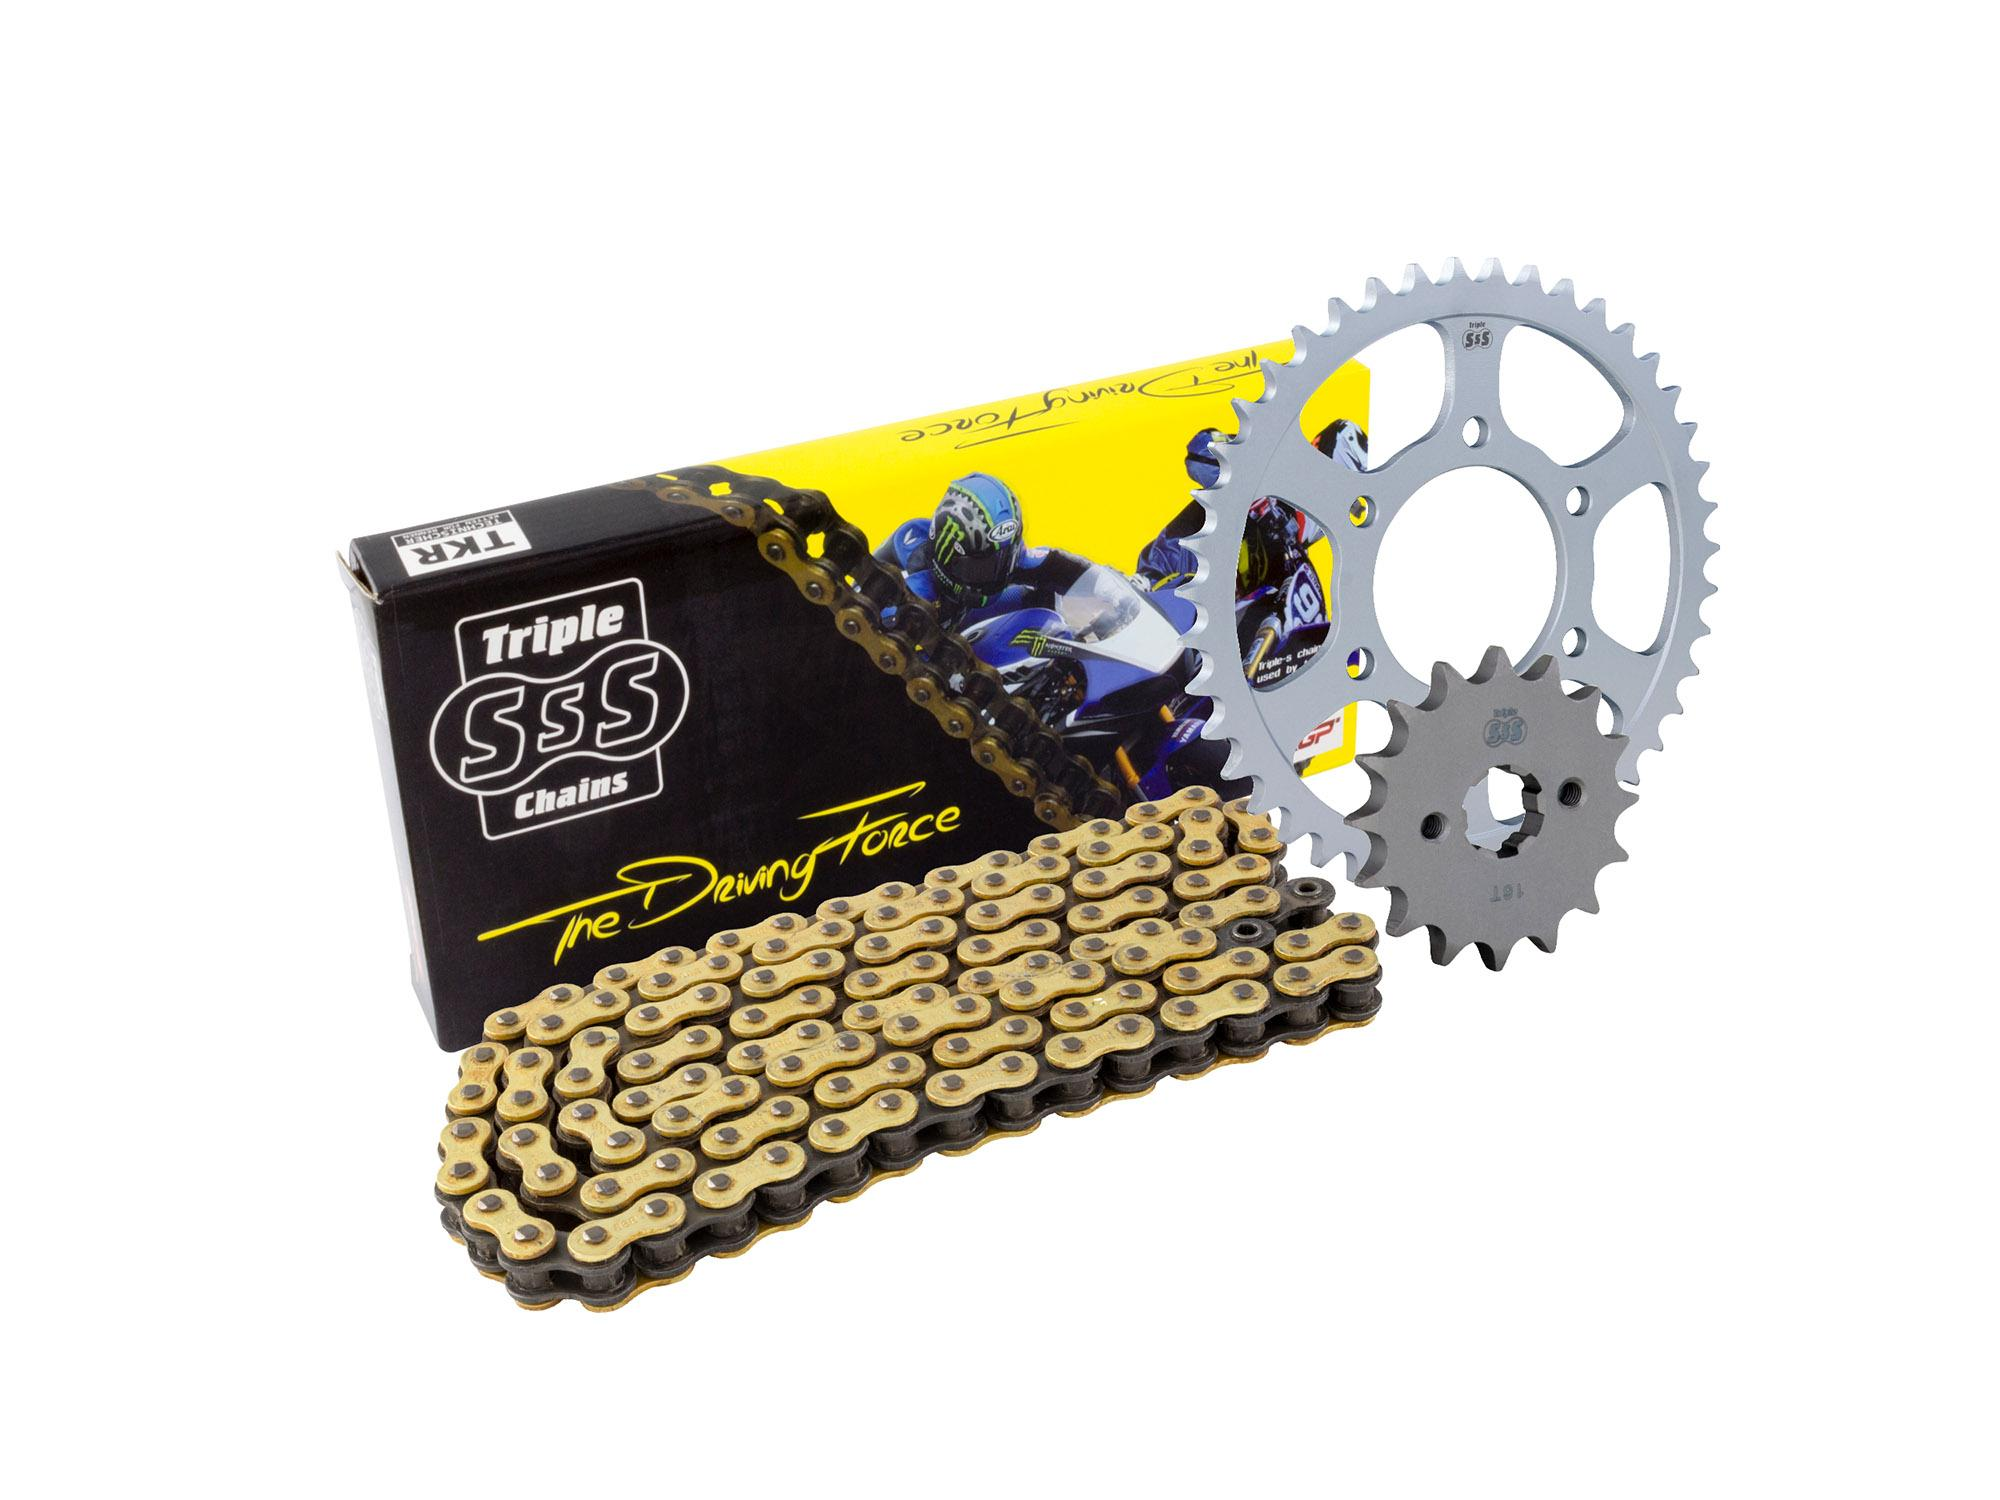 Yamaha YZF750 R 93-97 Chain & Sprocket Kit: 16T Front, 43T Rear, HD O-Ring Gold Chain 530H 106 Link